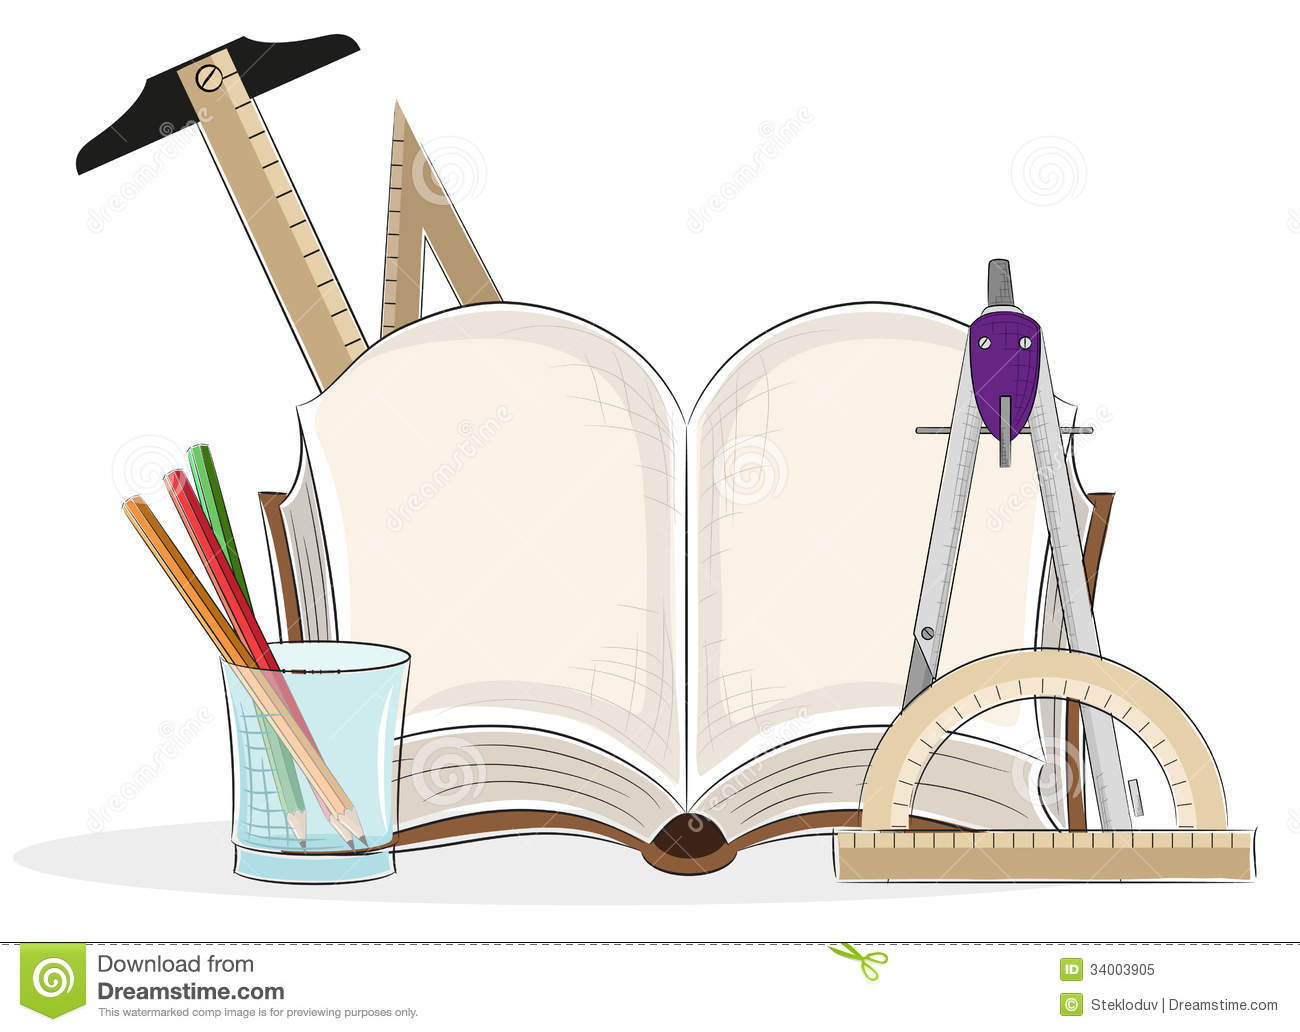 Drawing tools royalty free stock photo image 34003905 for Draw tool free